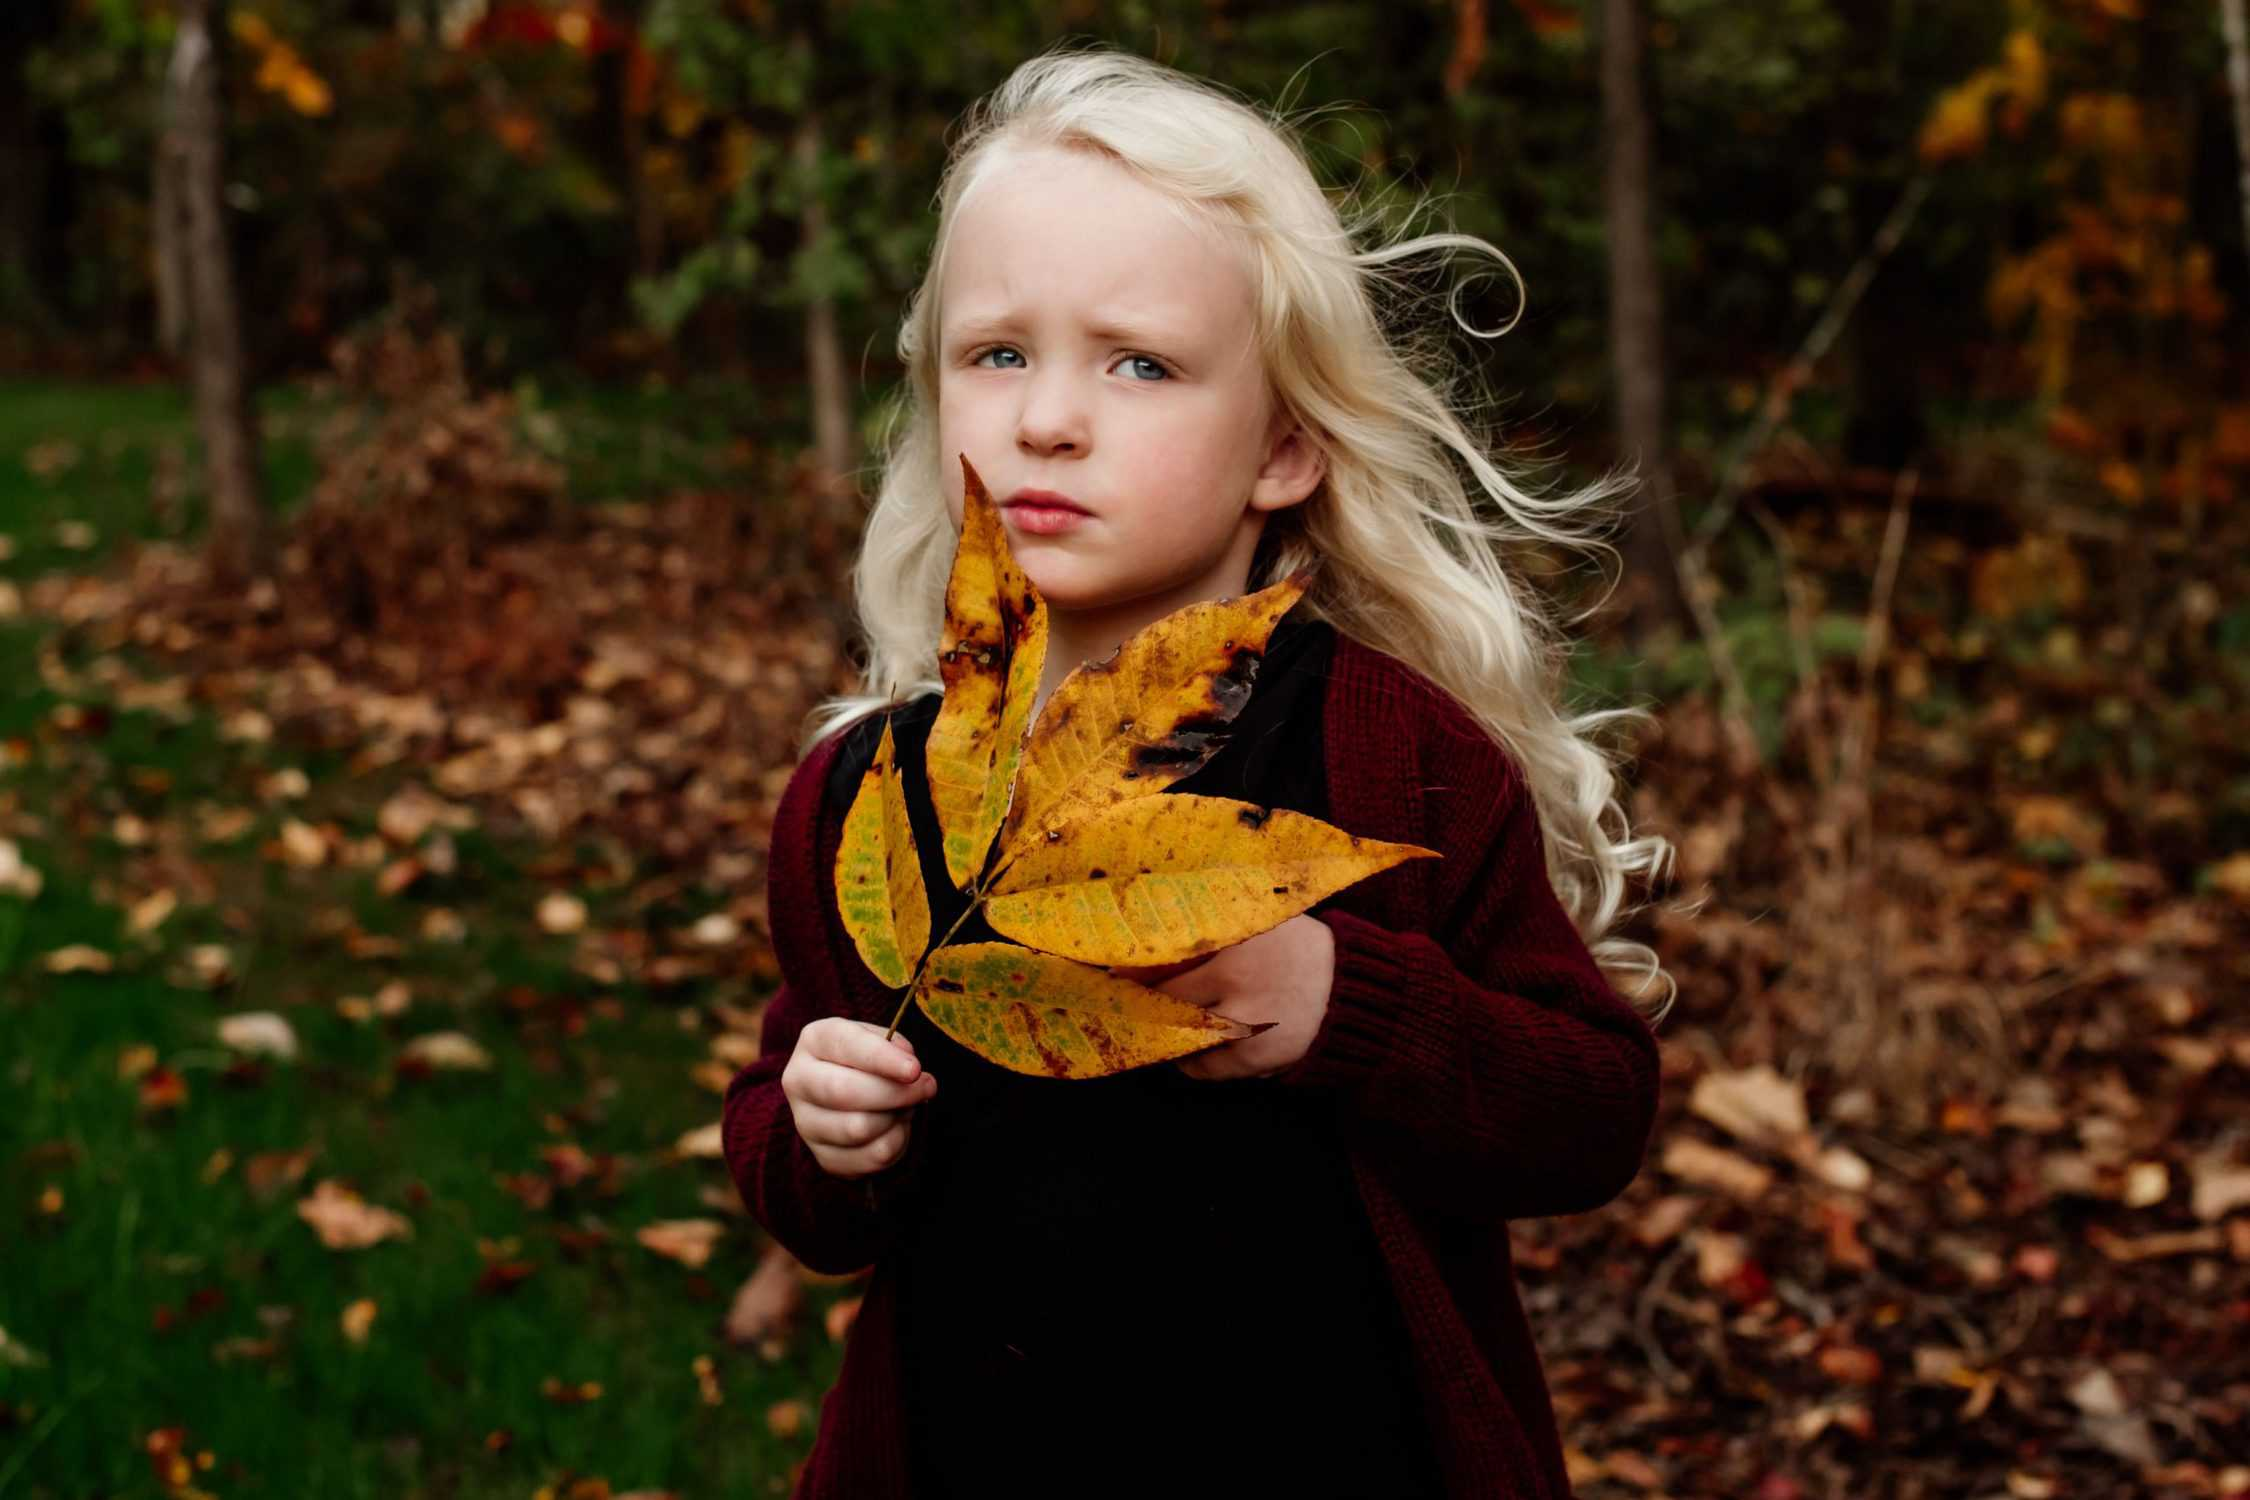 A little girl with blonde hair holding a large yellow leaf near her face